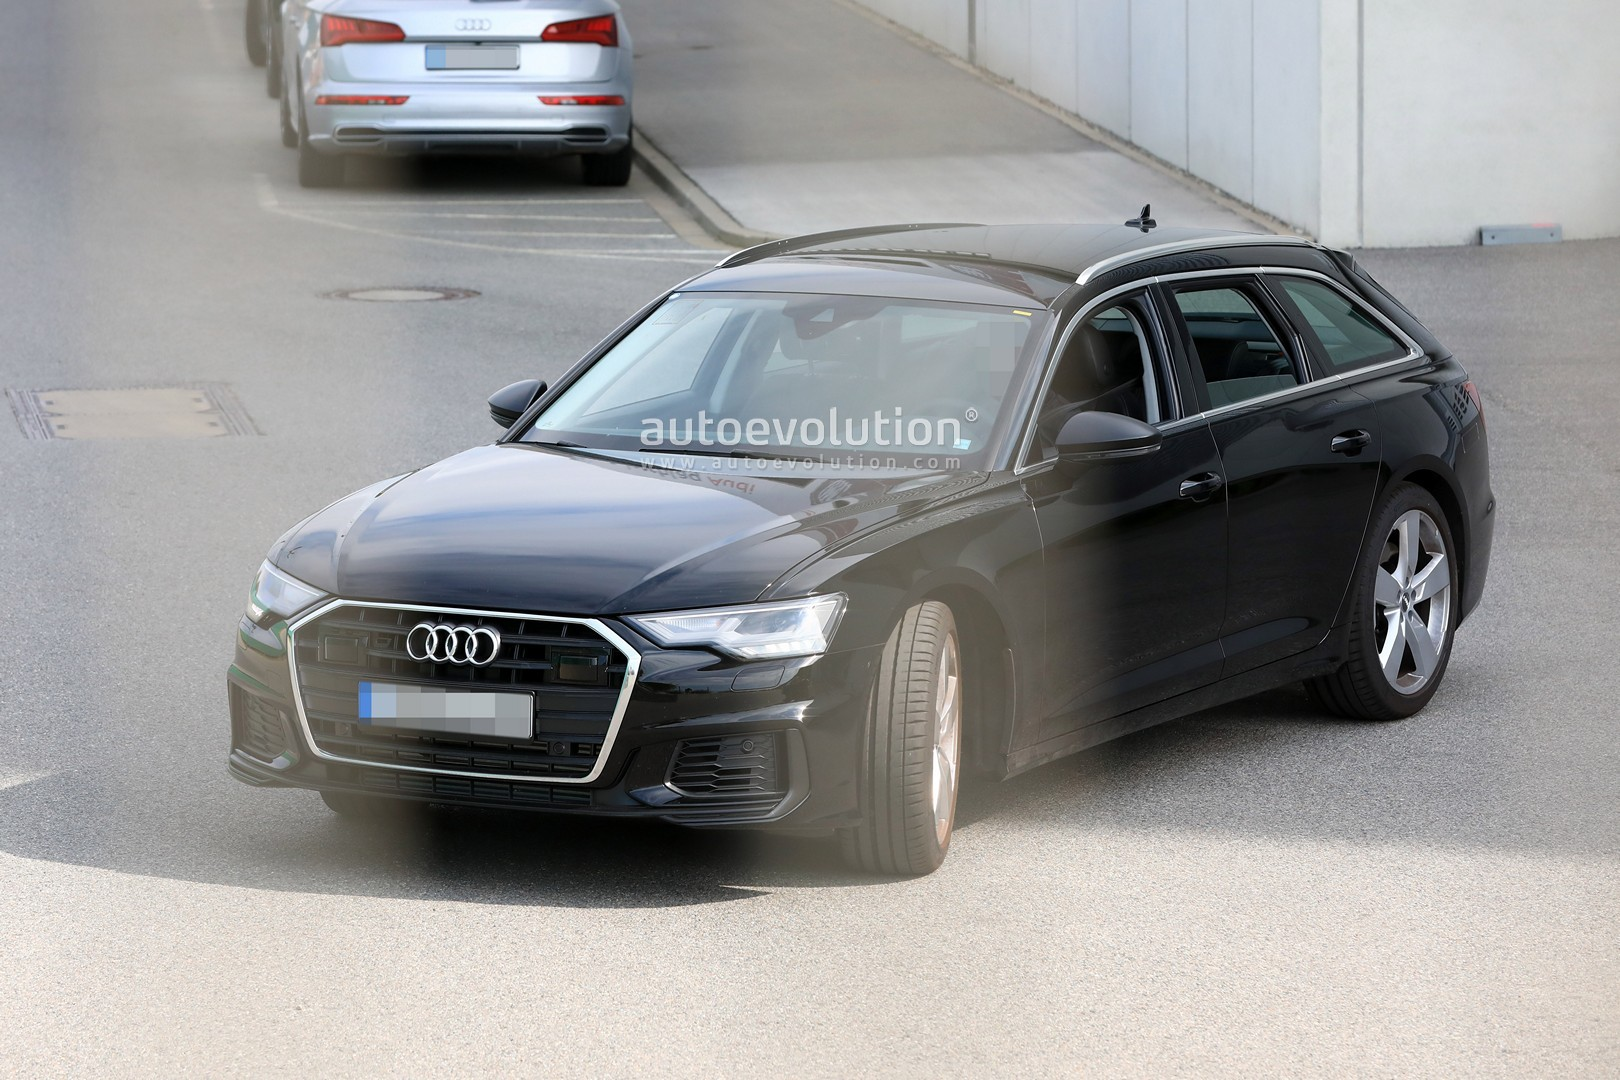 2017 - [Audi] A6 Berline & Avant [C8] - Page 10 2020-audi-s6-avant-spied-with-no-camo-looks-very-understated_1